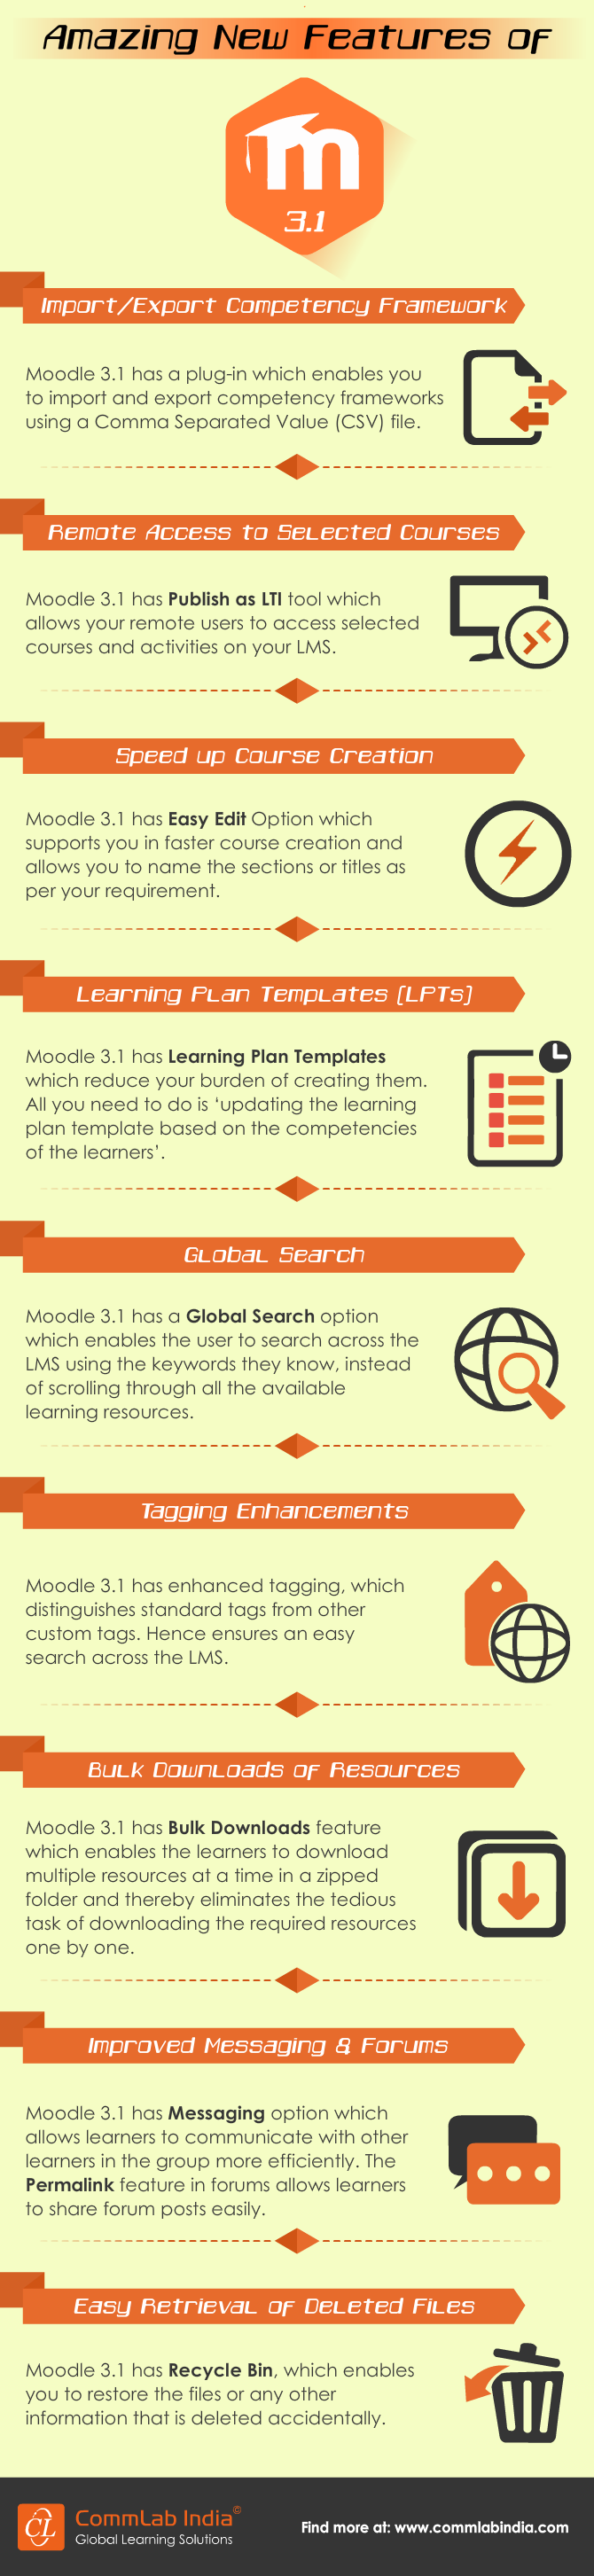 The Amazing New Features of Moodle 3.1 [Infographic]